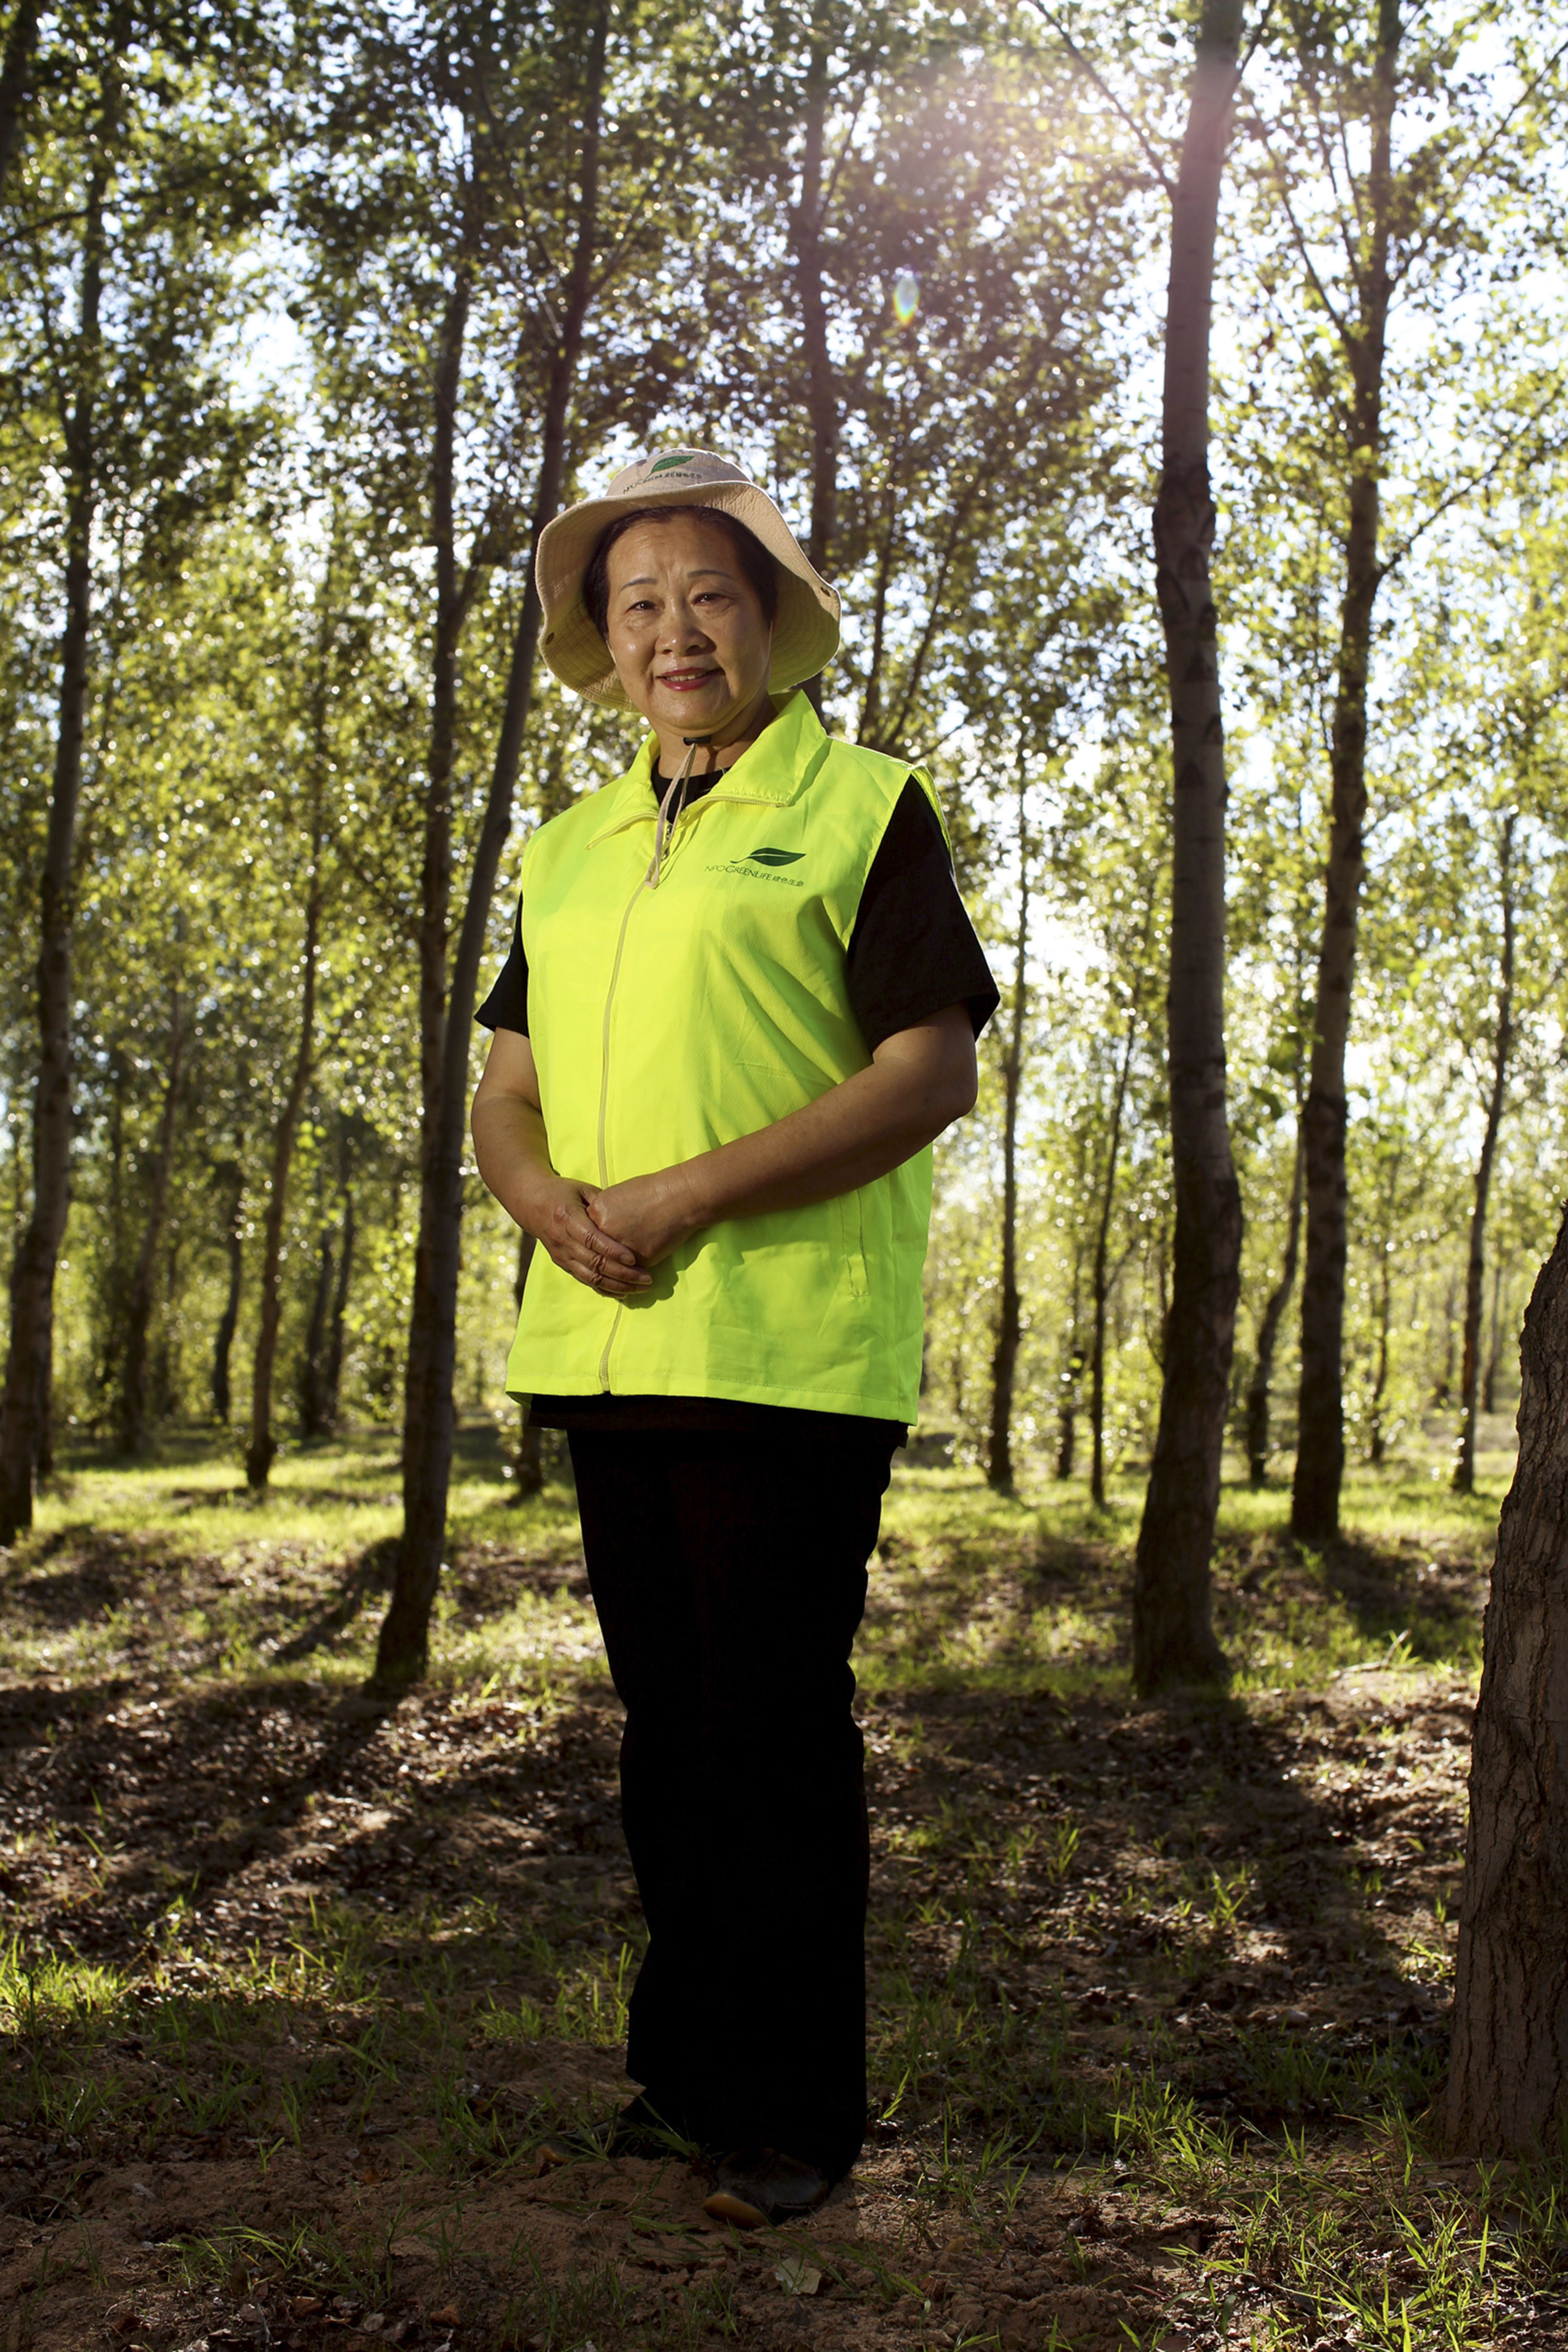 Since 2001, Yi and her Green Life NGO have planted countless numbers of trees